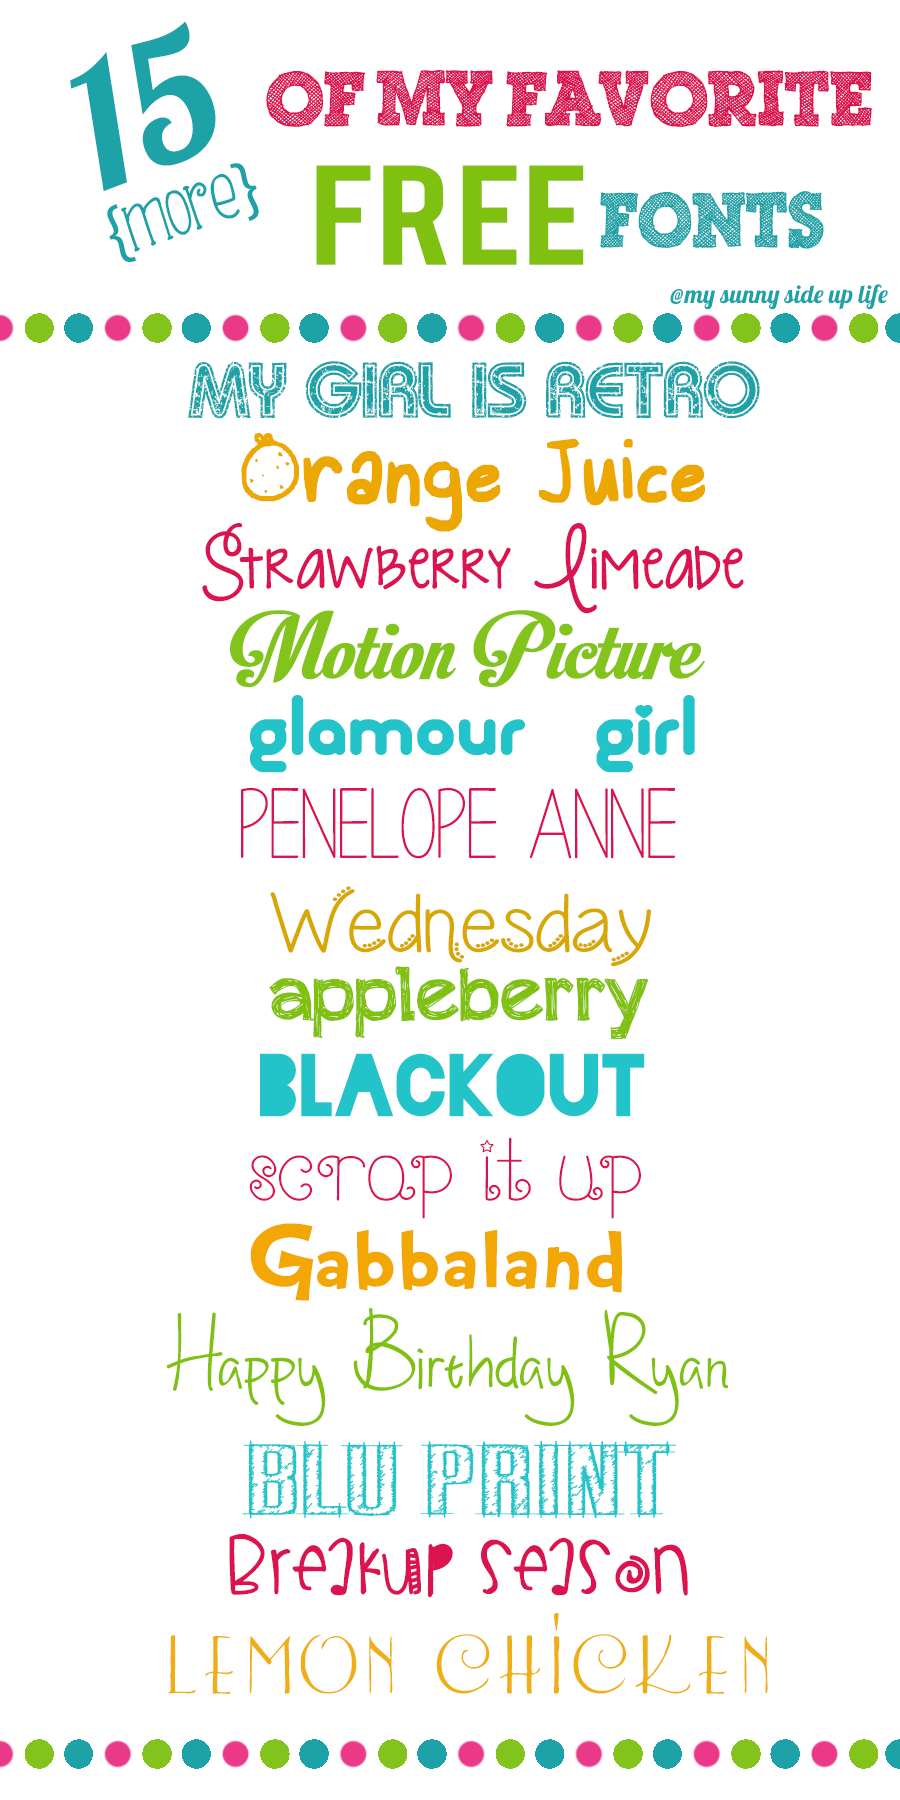 15 (more) of my favorite free fonts